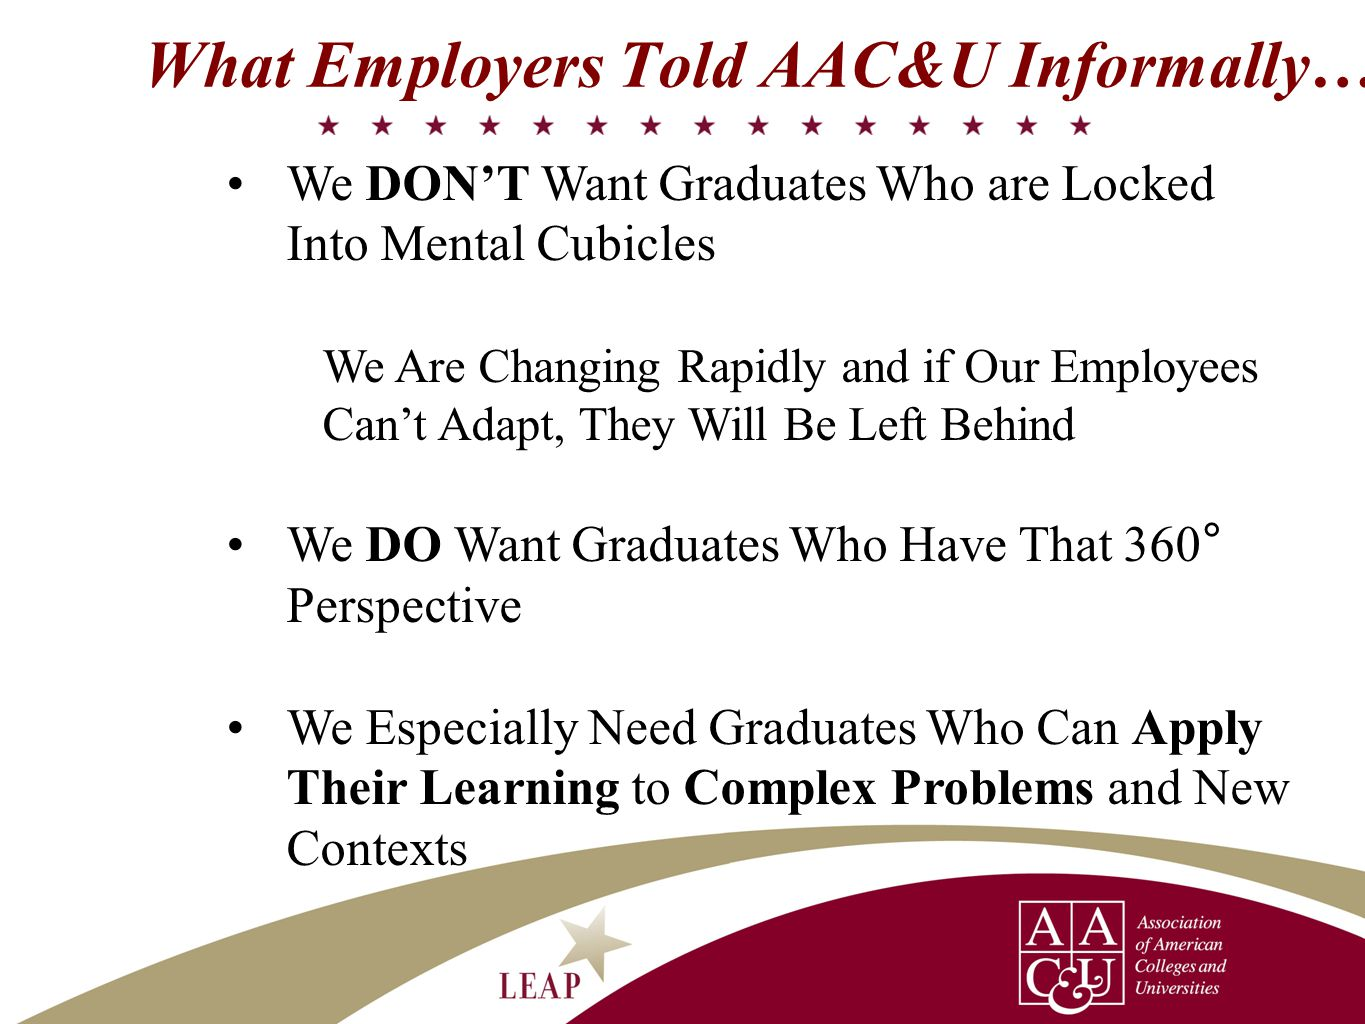 We DON'T Want Graduates Who are Locked Into Mental Cubicles We Are Changing Rapidly and if Our Employees Can't Adapt, They Will Be Left Behind We DO W